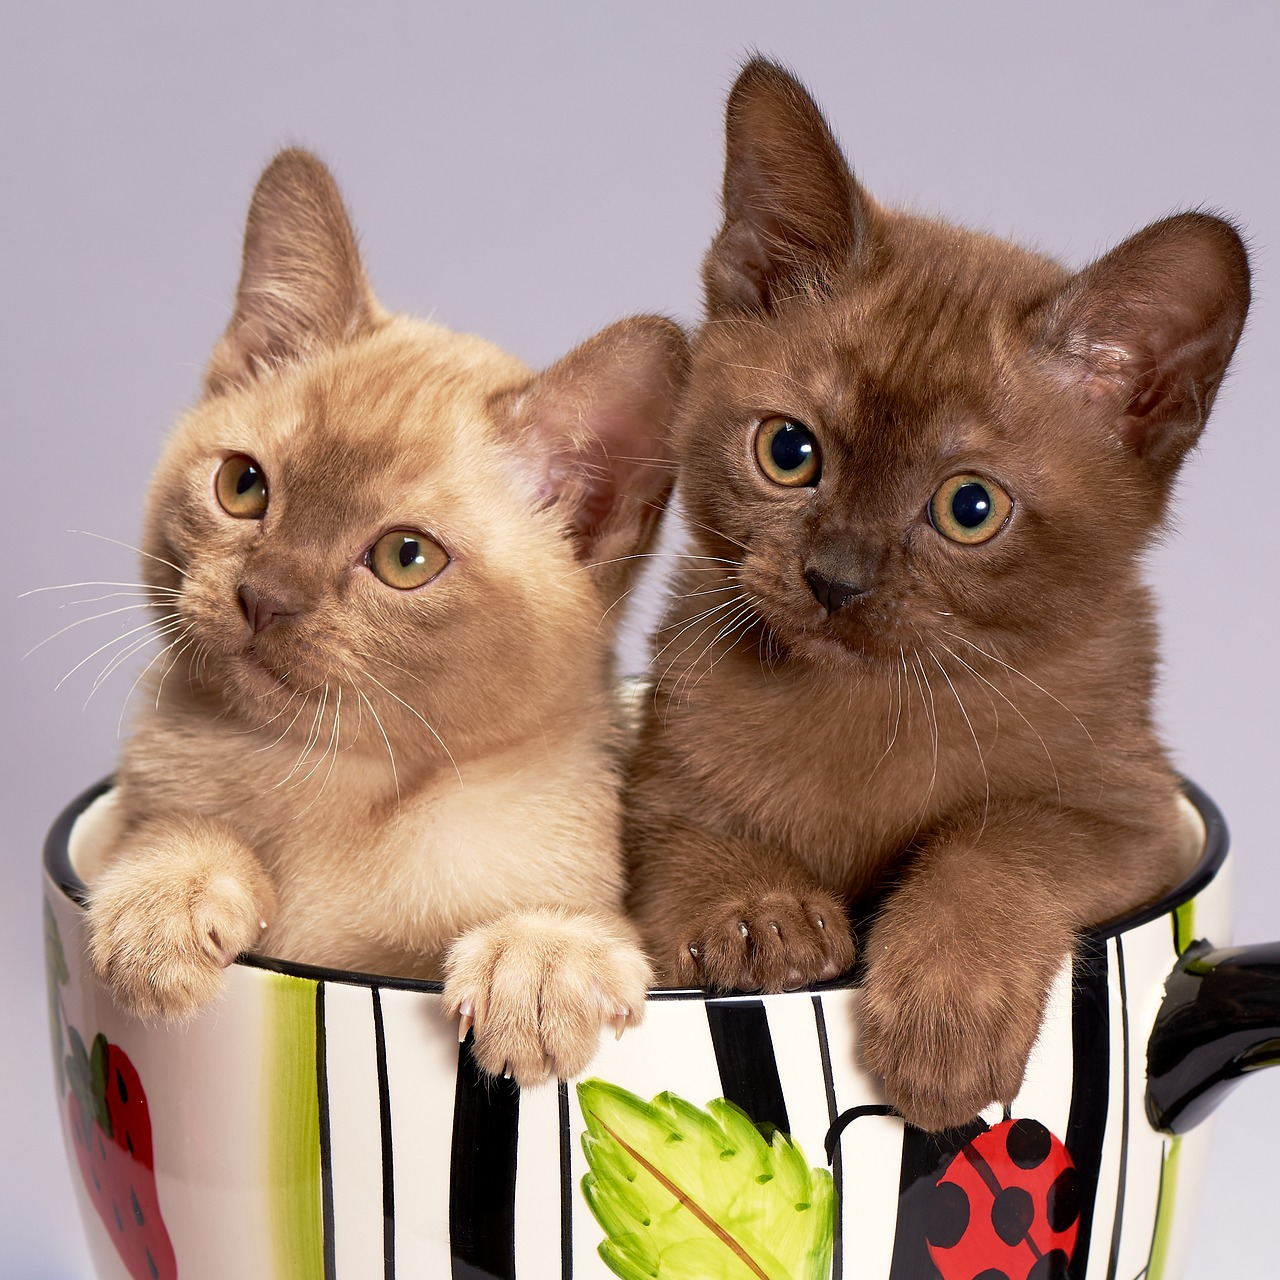 Two Burmese kittens in a cup